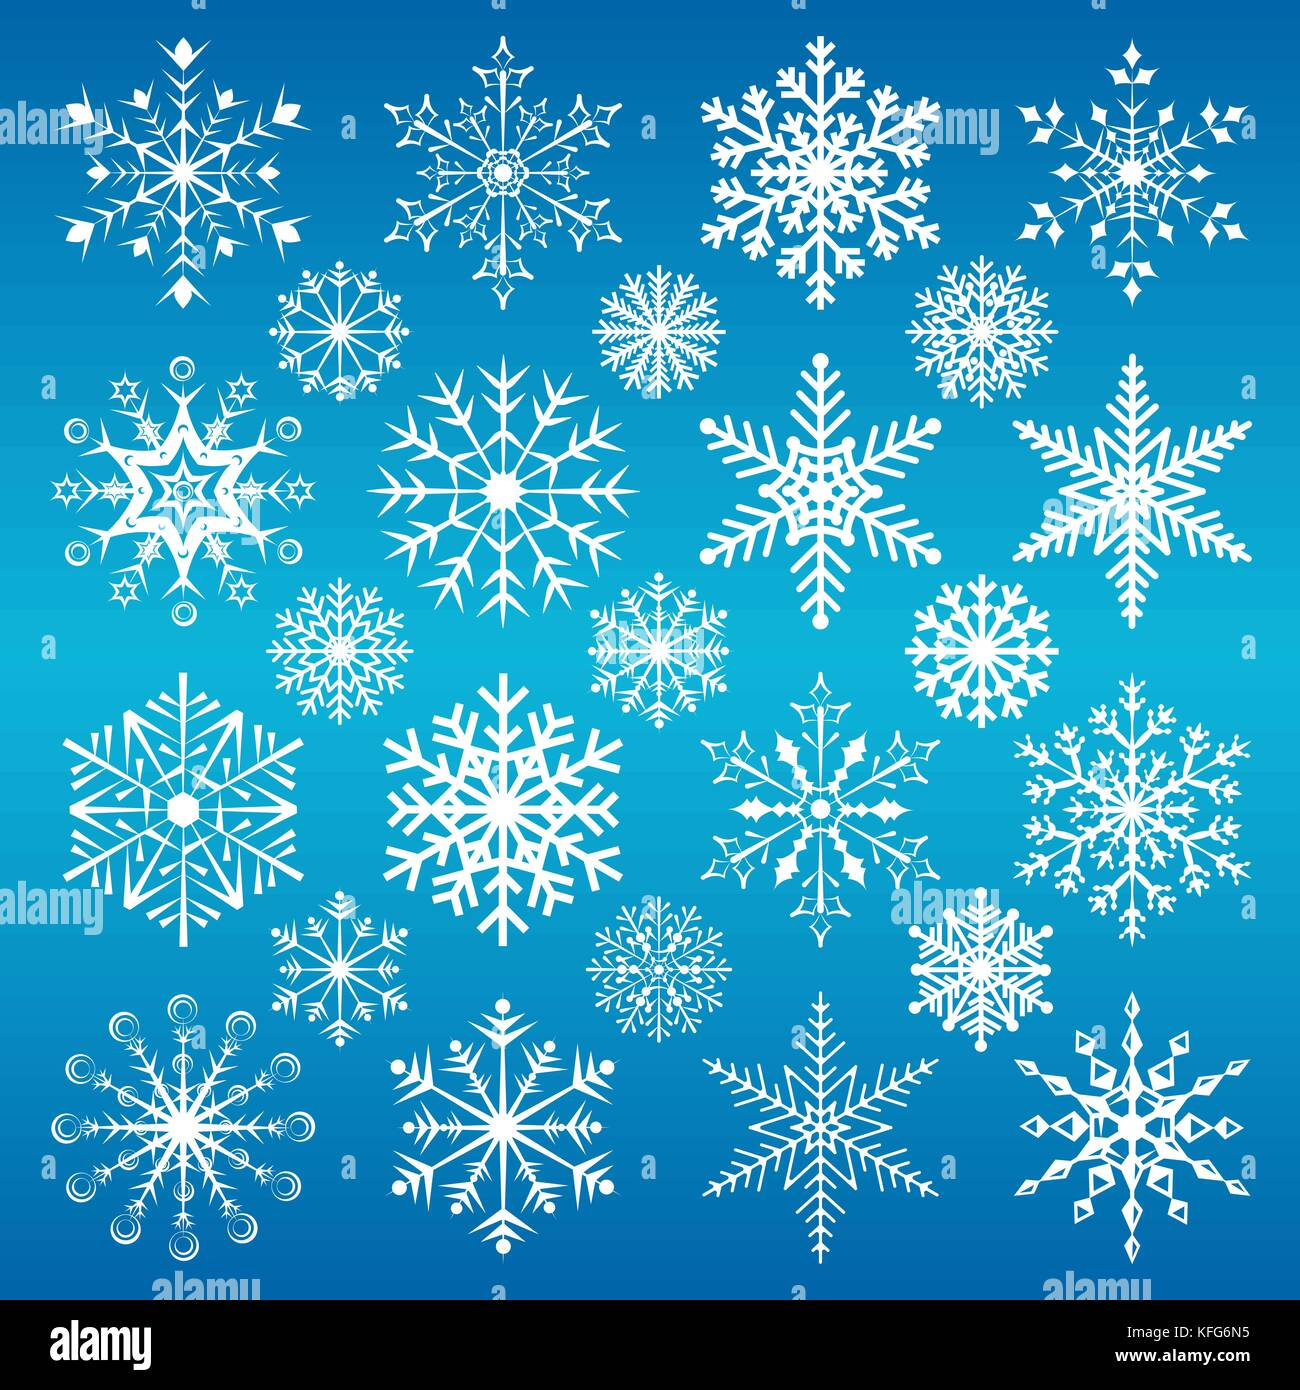 Christmas snowflakes on a blue background. - Stock Image